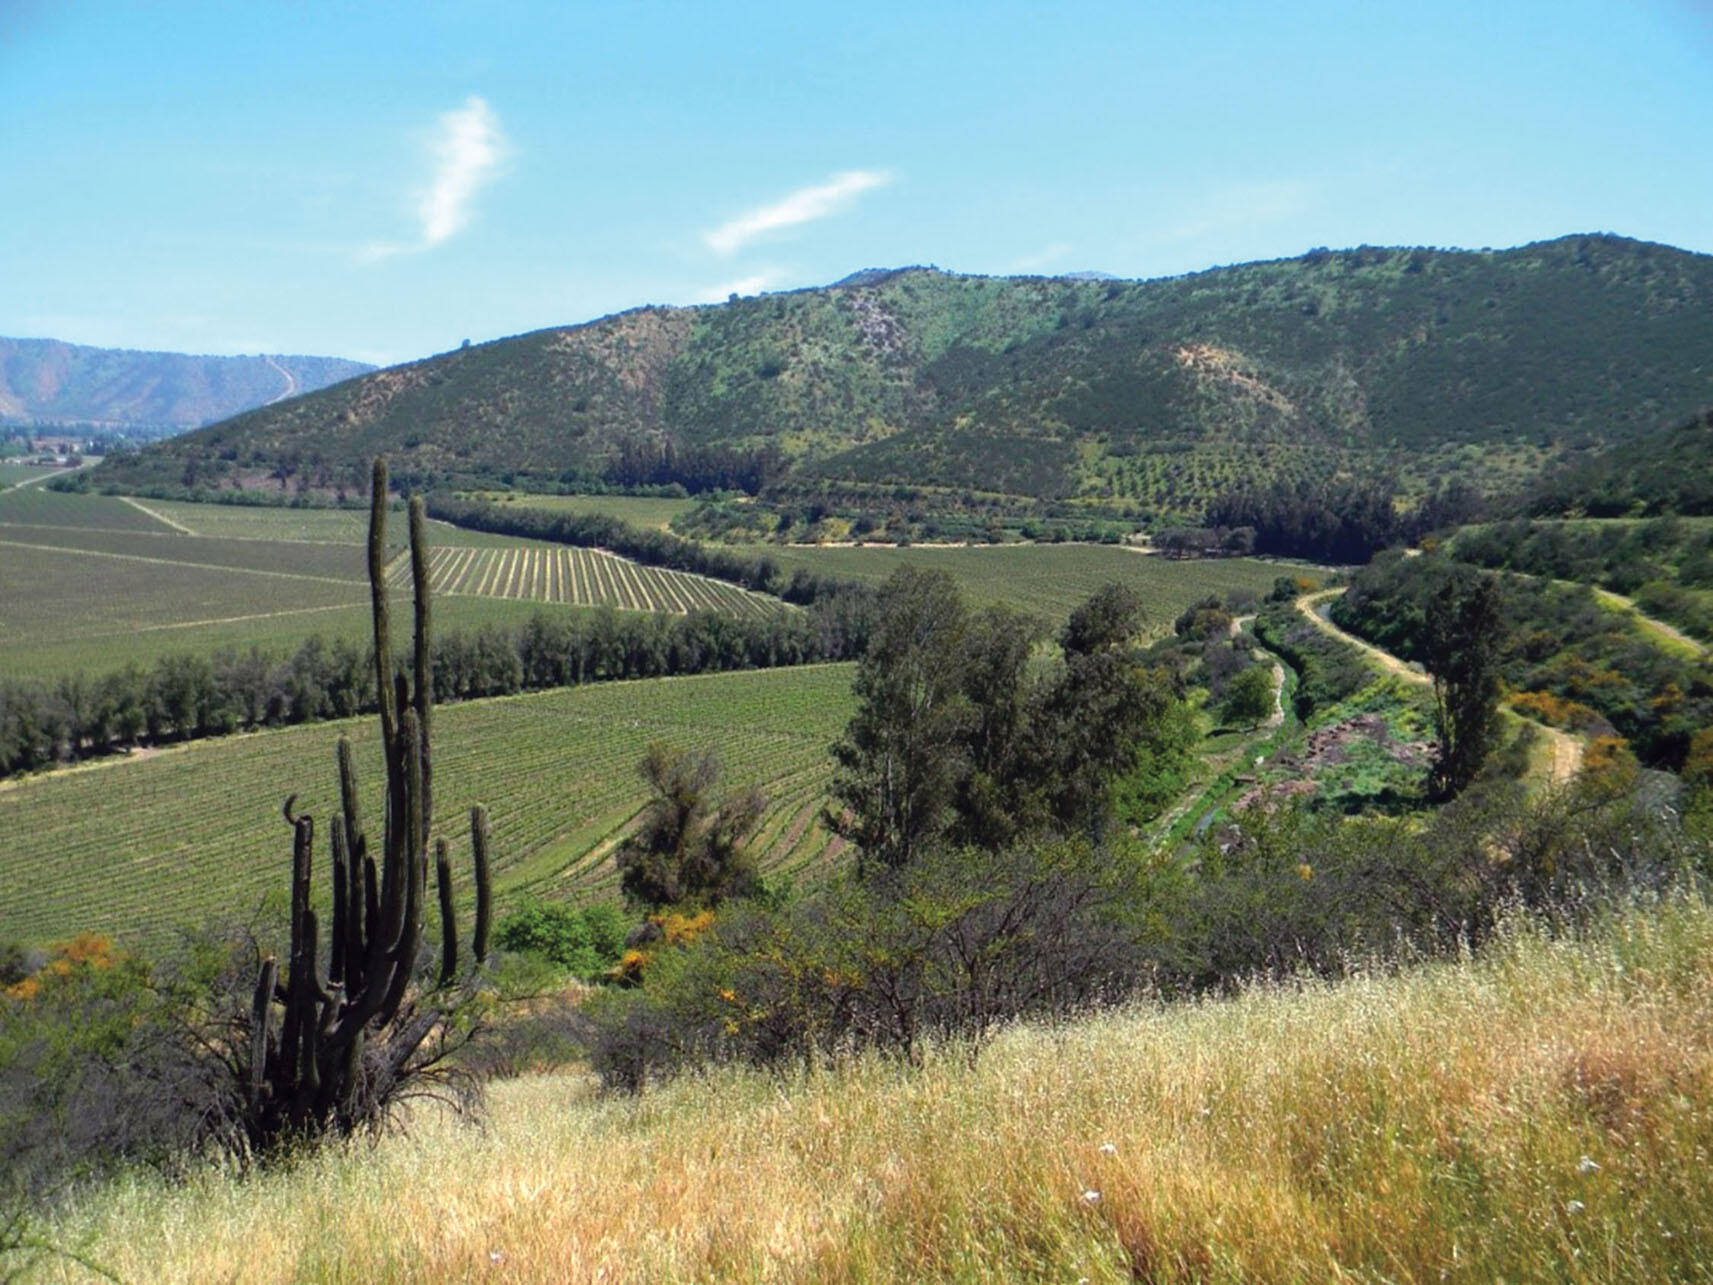 A hillside at Odfjell Vineyards in Maipo Valley, Chile, which adjoins 150 hectares of native shrublands  and forest currently under a restoration program focusing on degraded slopes. (Photo courtesy of Adina Merenlender.)